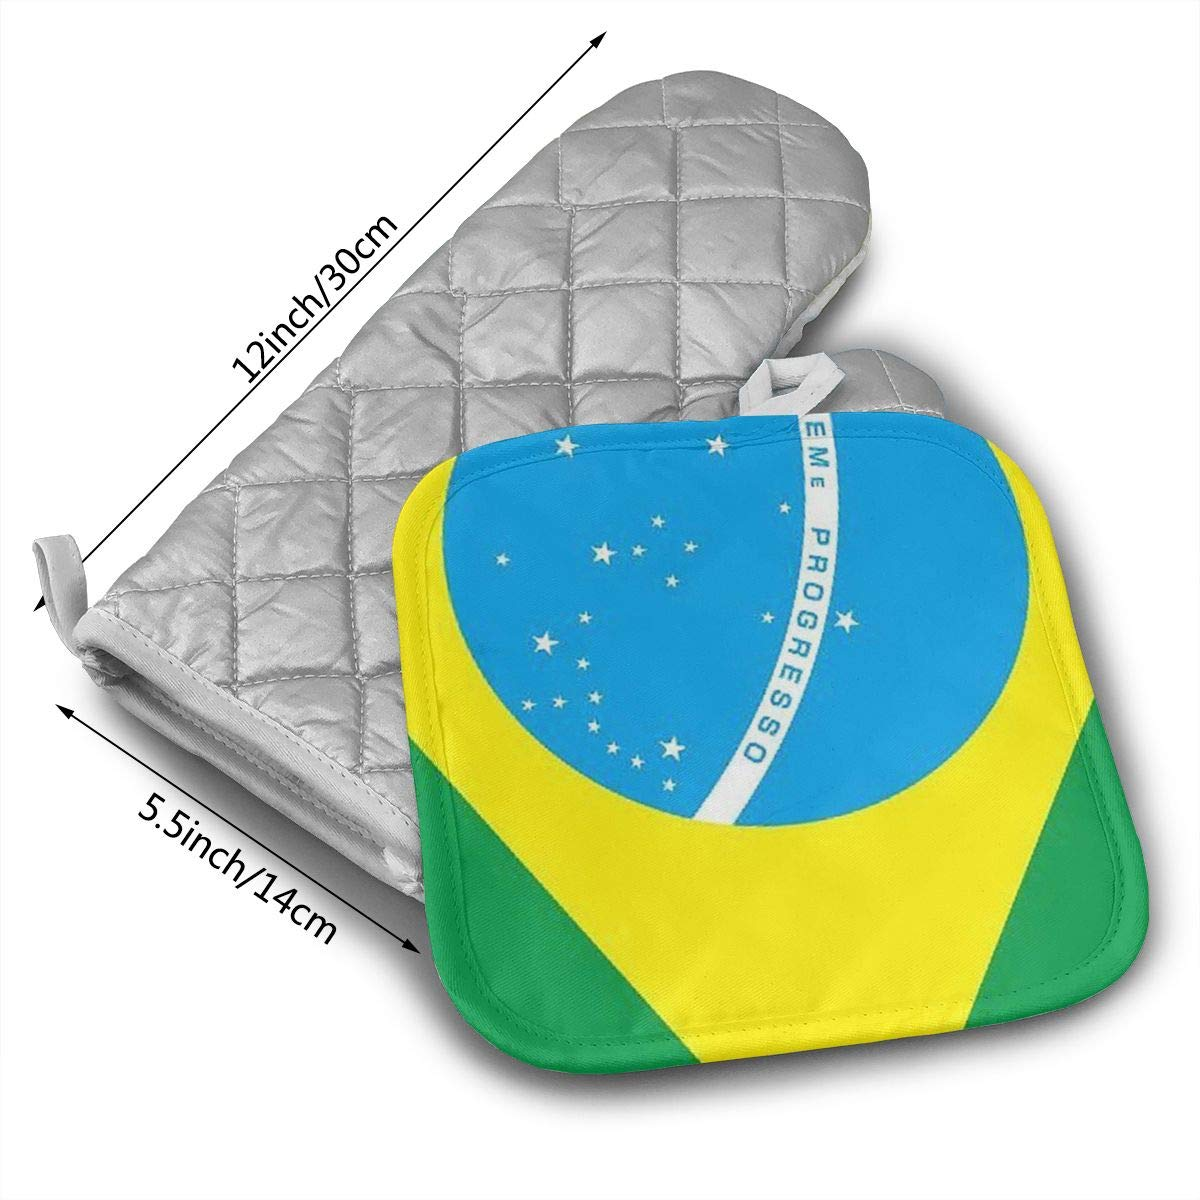 Amazon.com: GUYDHL Unisex Oven Mitt and Pot Holder for Flag of Brazil - 2 Pair: Home & Kitchen